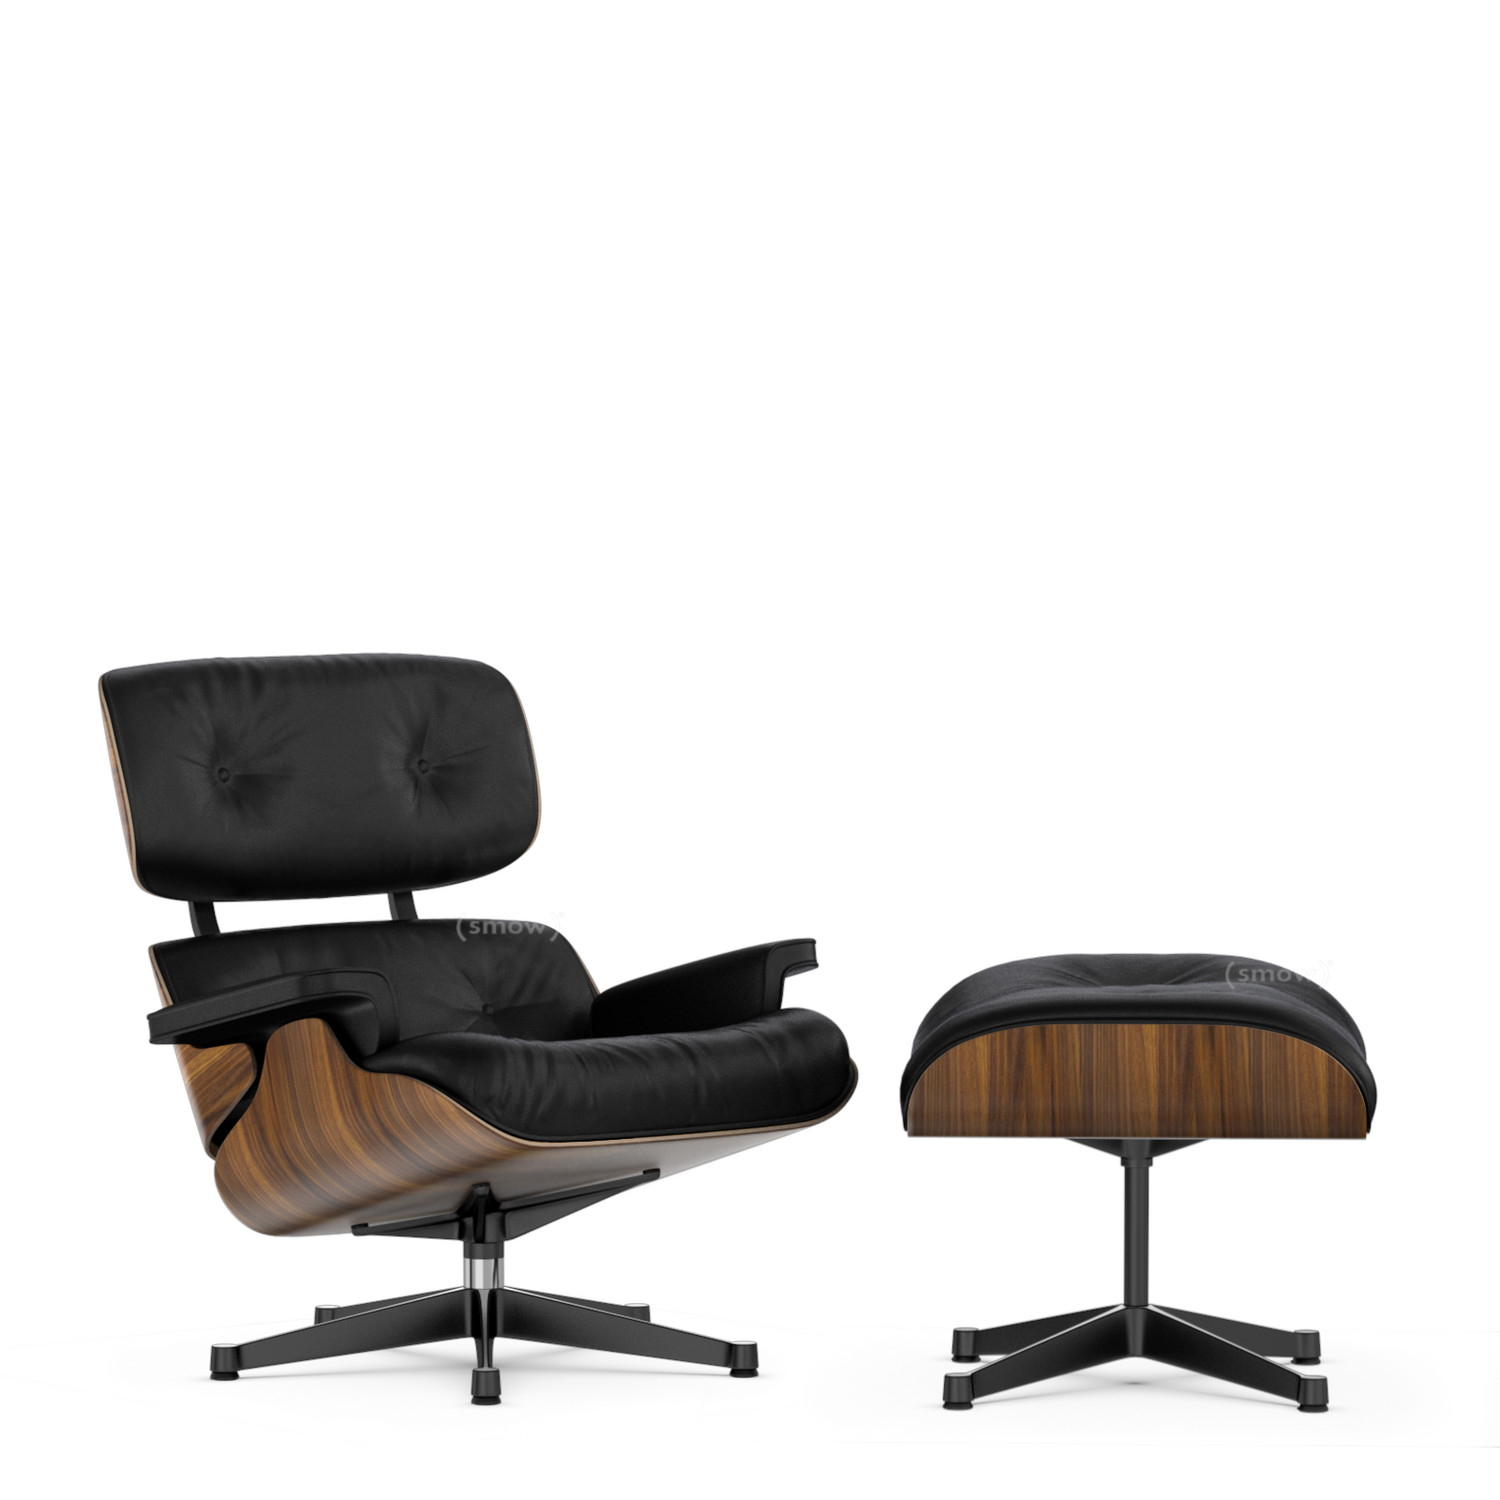 Vitra lounge chair ottoman by charles ray eames 1956 for Fauteuil bois eames